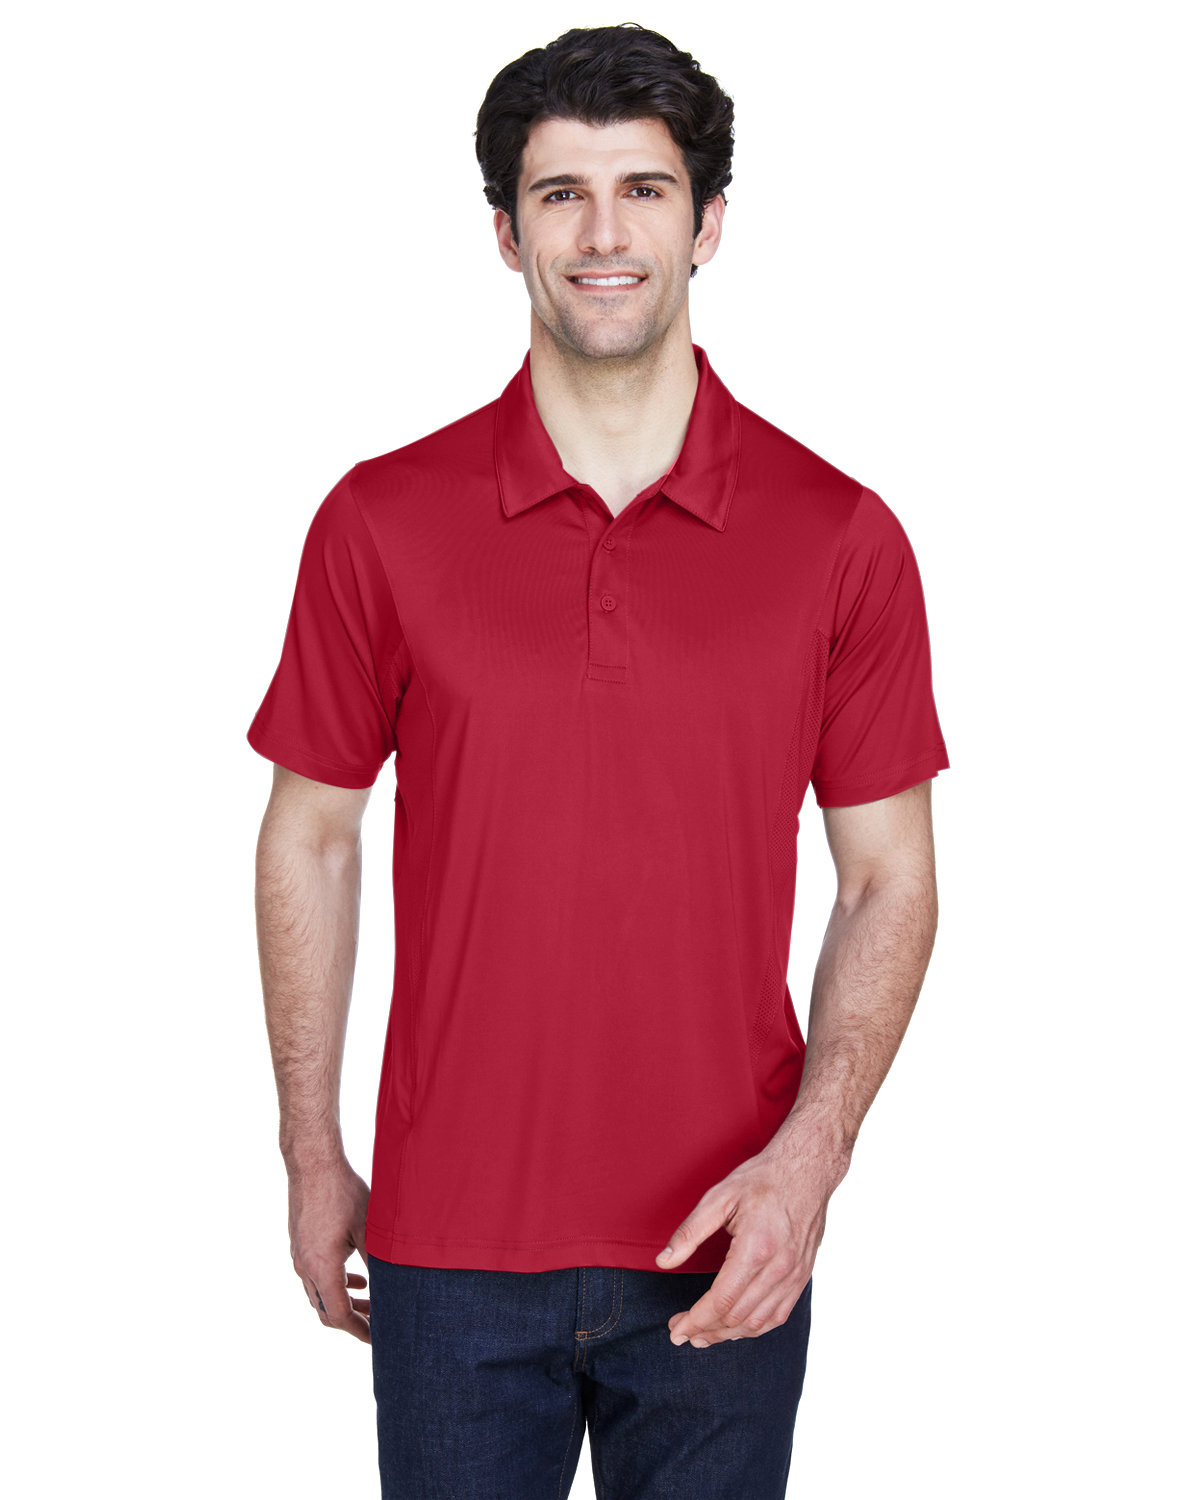 Team 365 Men's Charger Performance Polo SP SCARLET RED